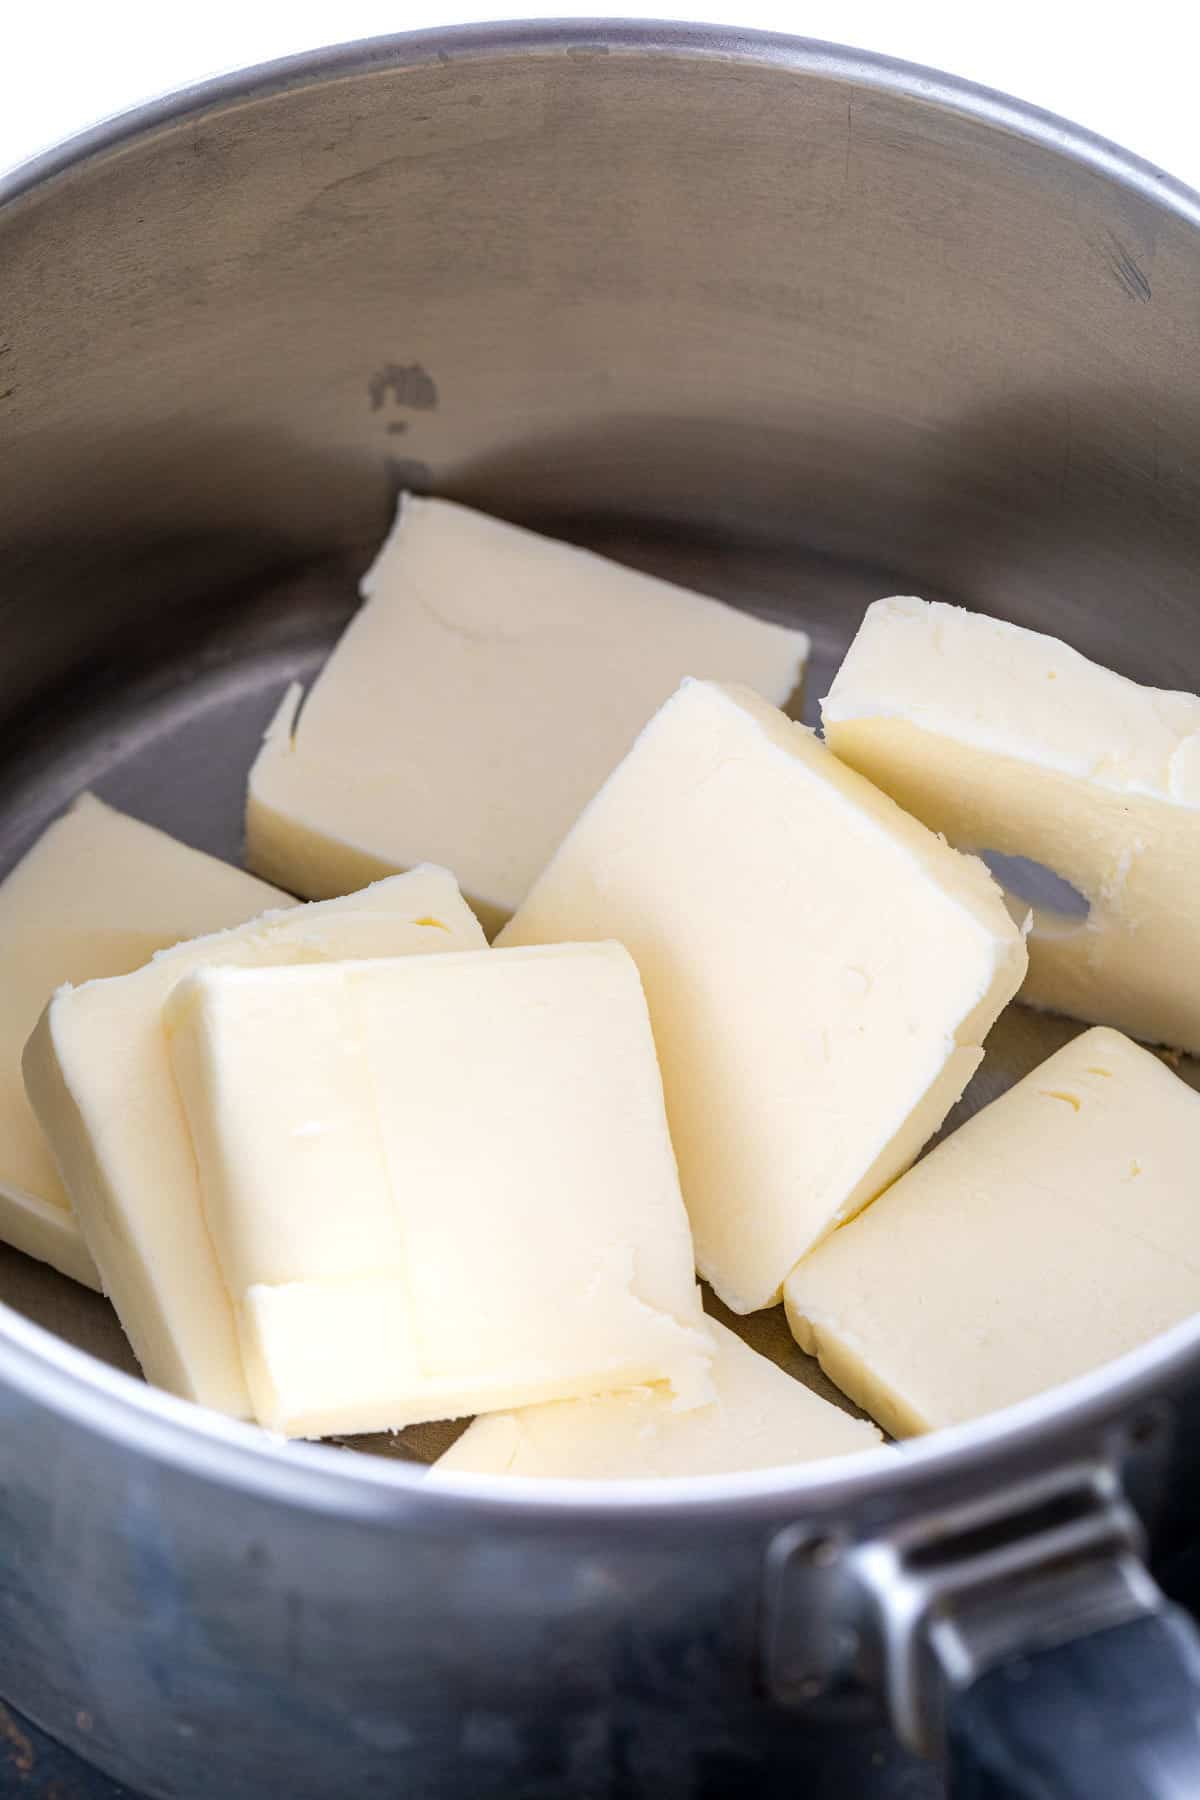 several slices of butter in a small saucepan